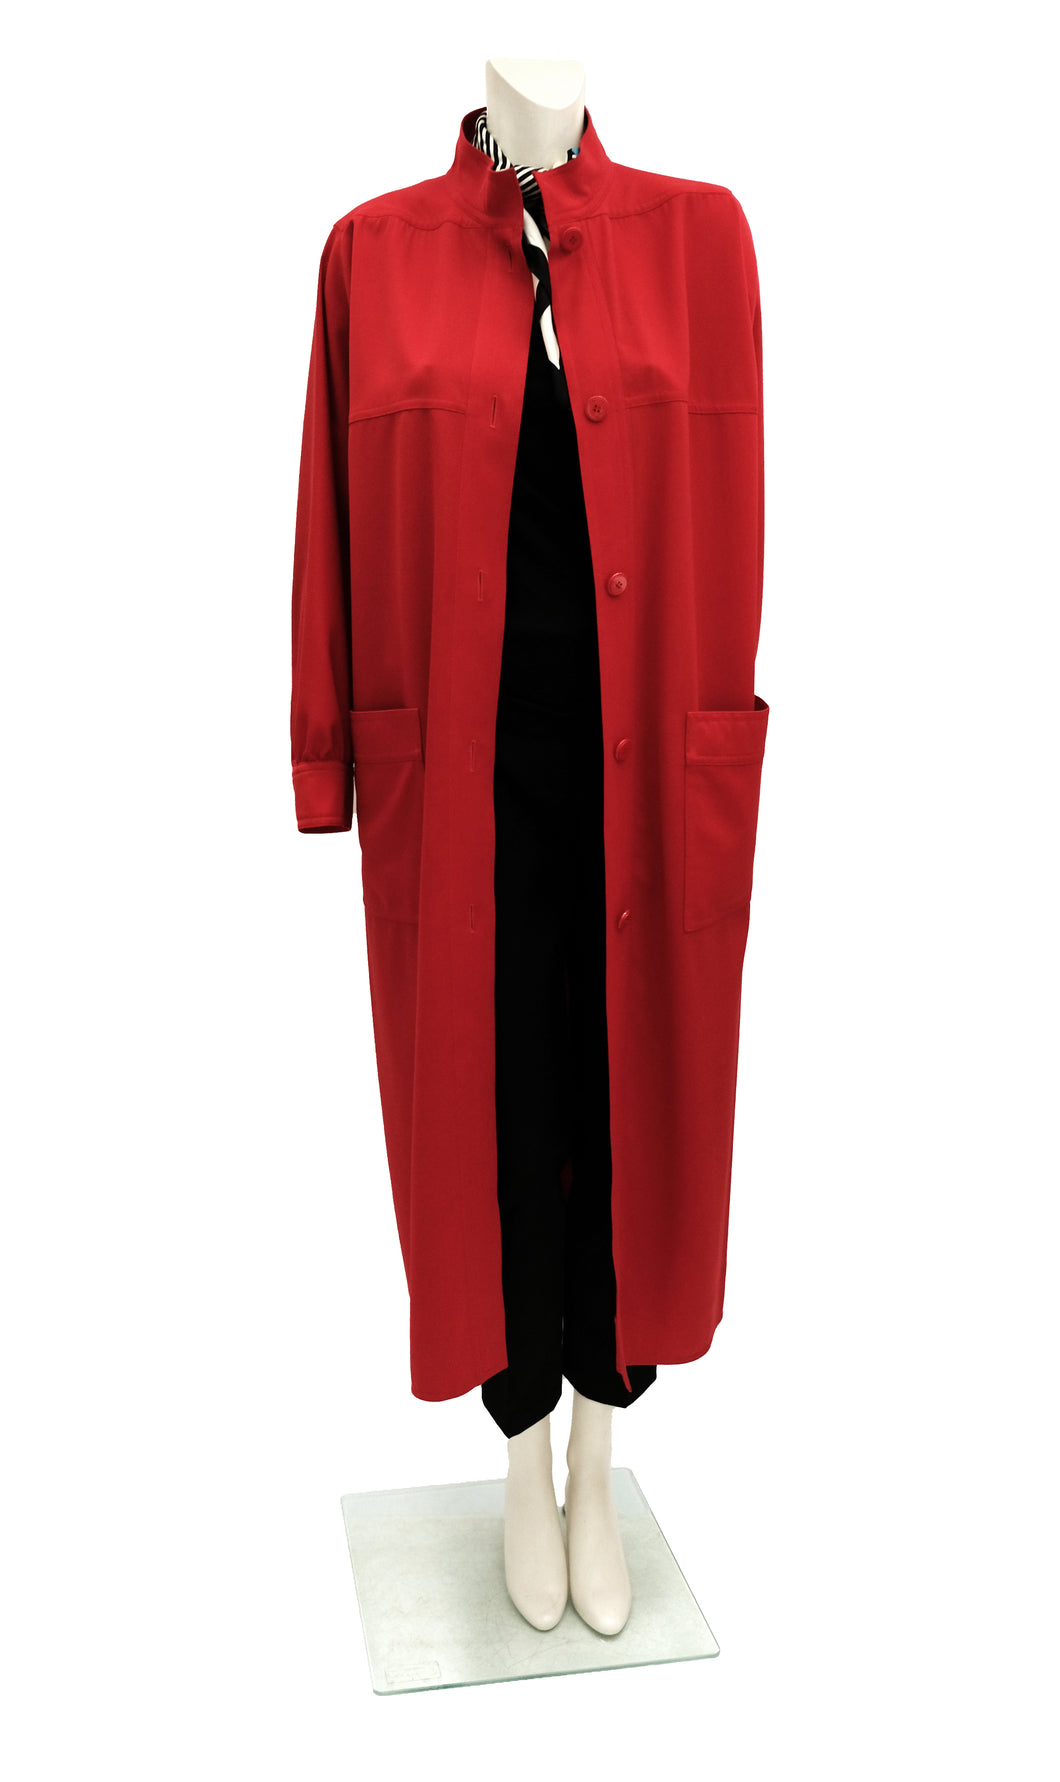 Emanuel Ungaro Vintage Coat Dress in Fire Engine Red, UK12